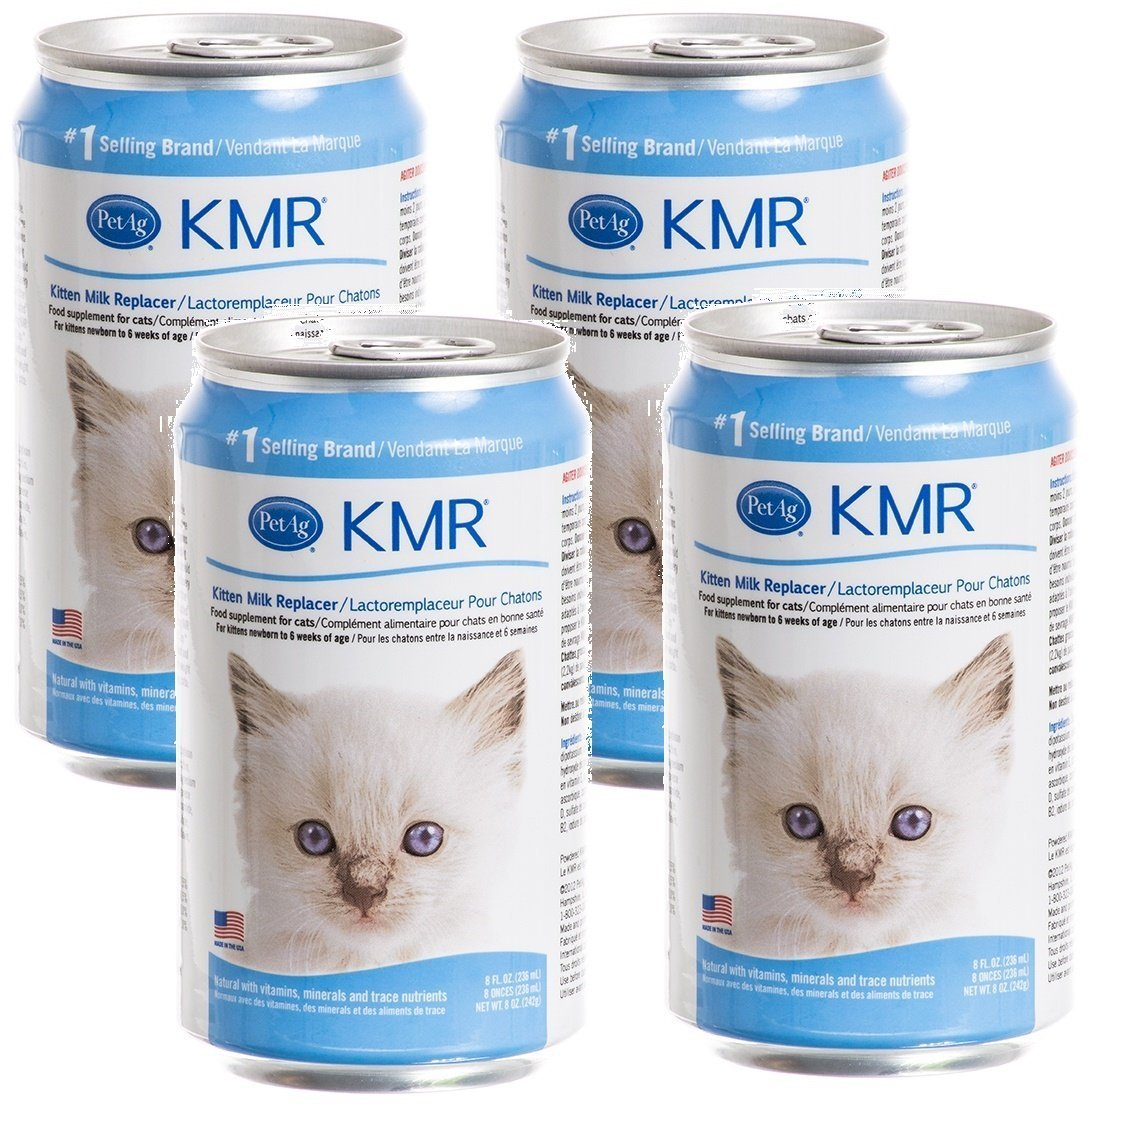 (4-Pack) KMR Liquid Milk Replacer for Kittens and Cats, 8-Ounce Cans by KMR